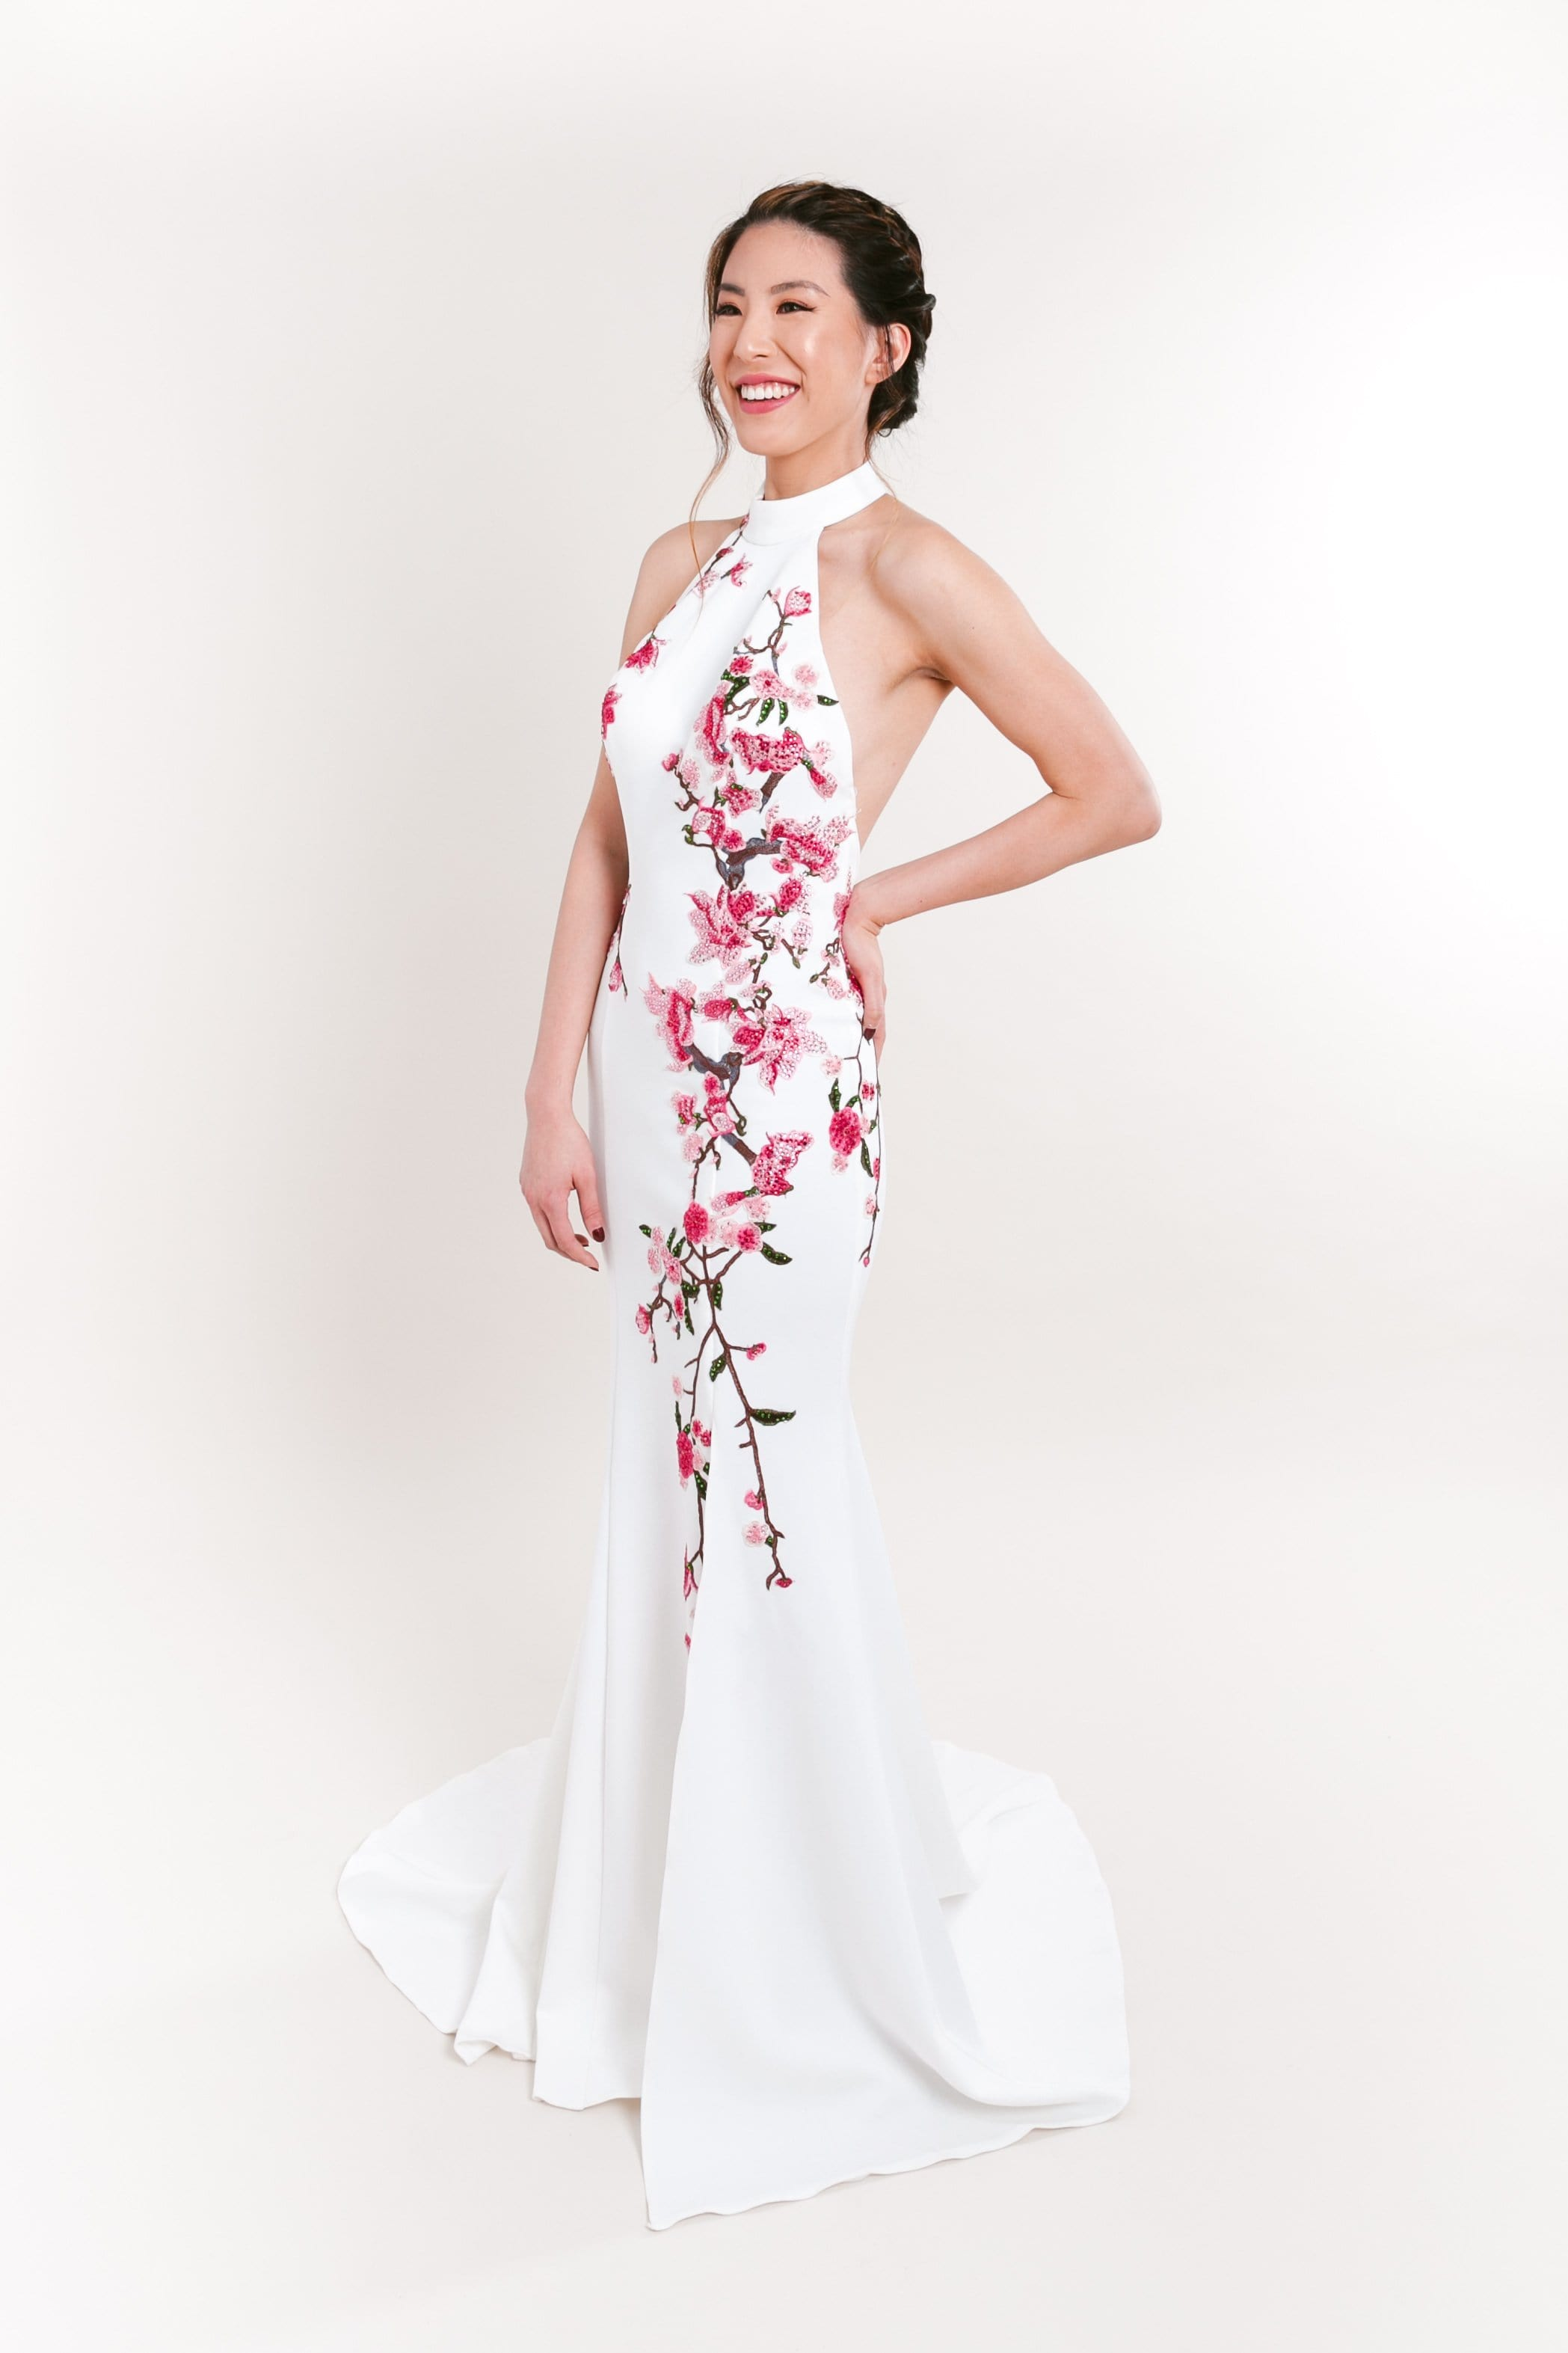 Celeste Dress - Cheongsam - East Meets Dress